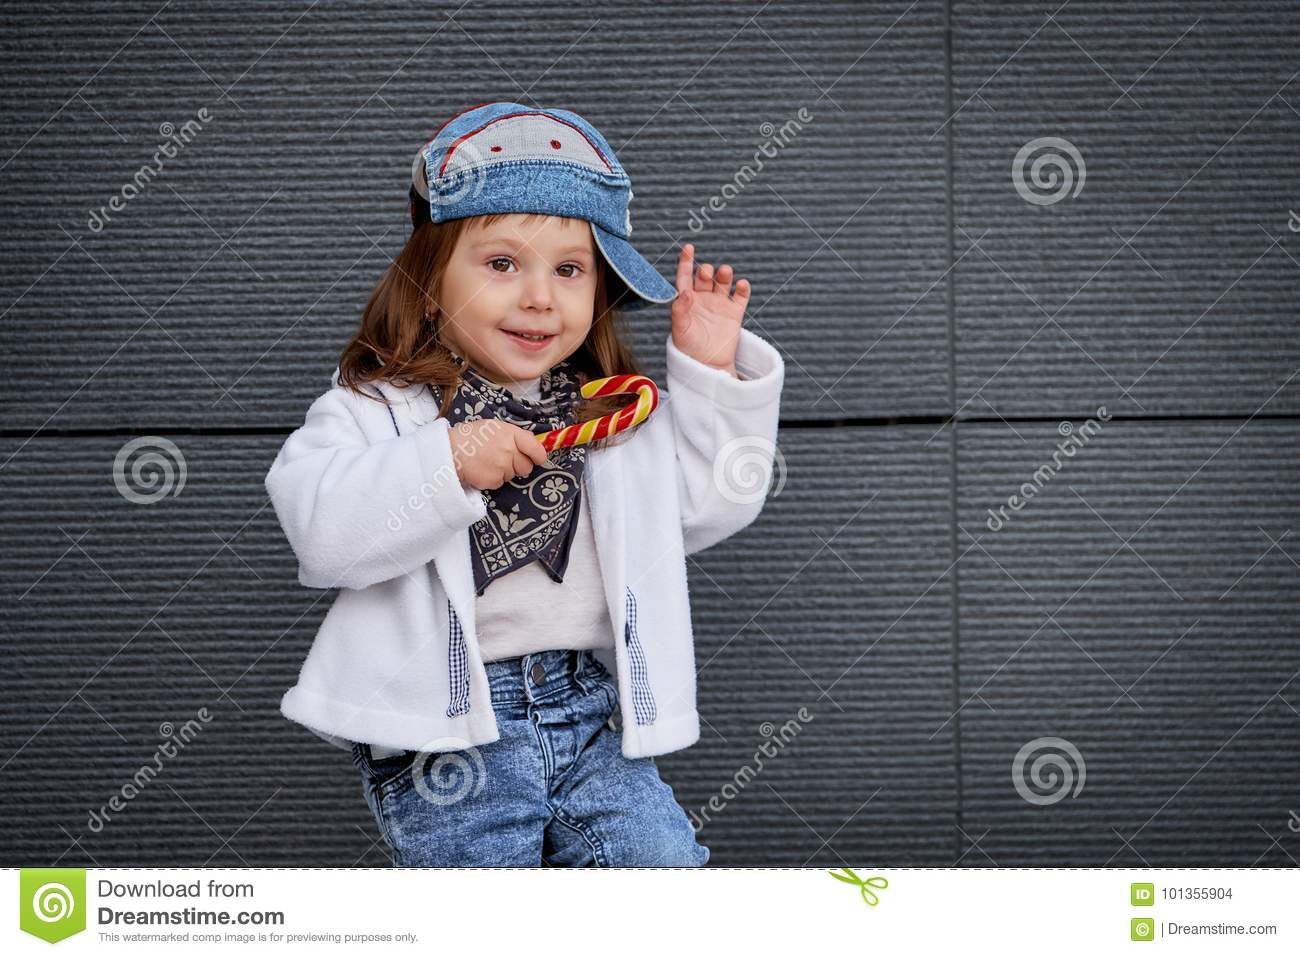 43b3a3ad0d460 Model Child Hip-hop.baby In A Baseball Cap. Stock Photo - Image of ...